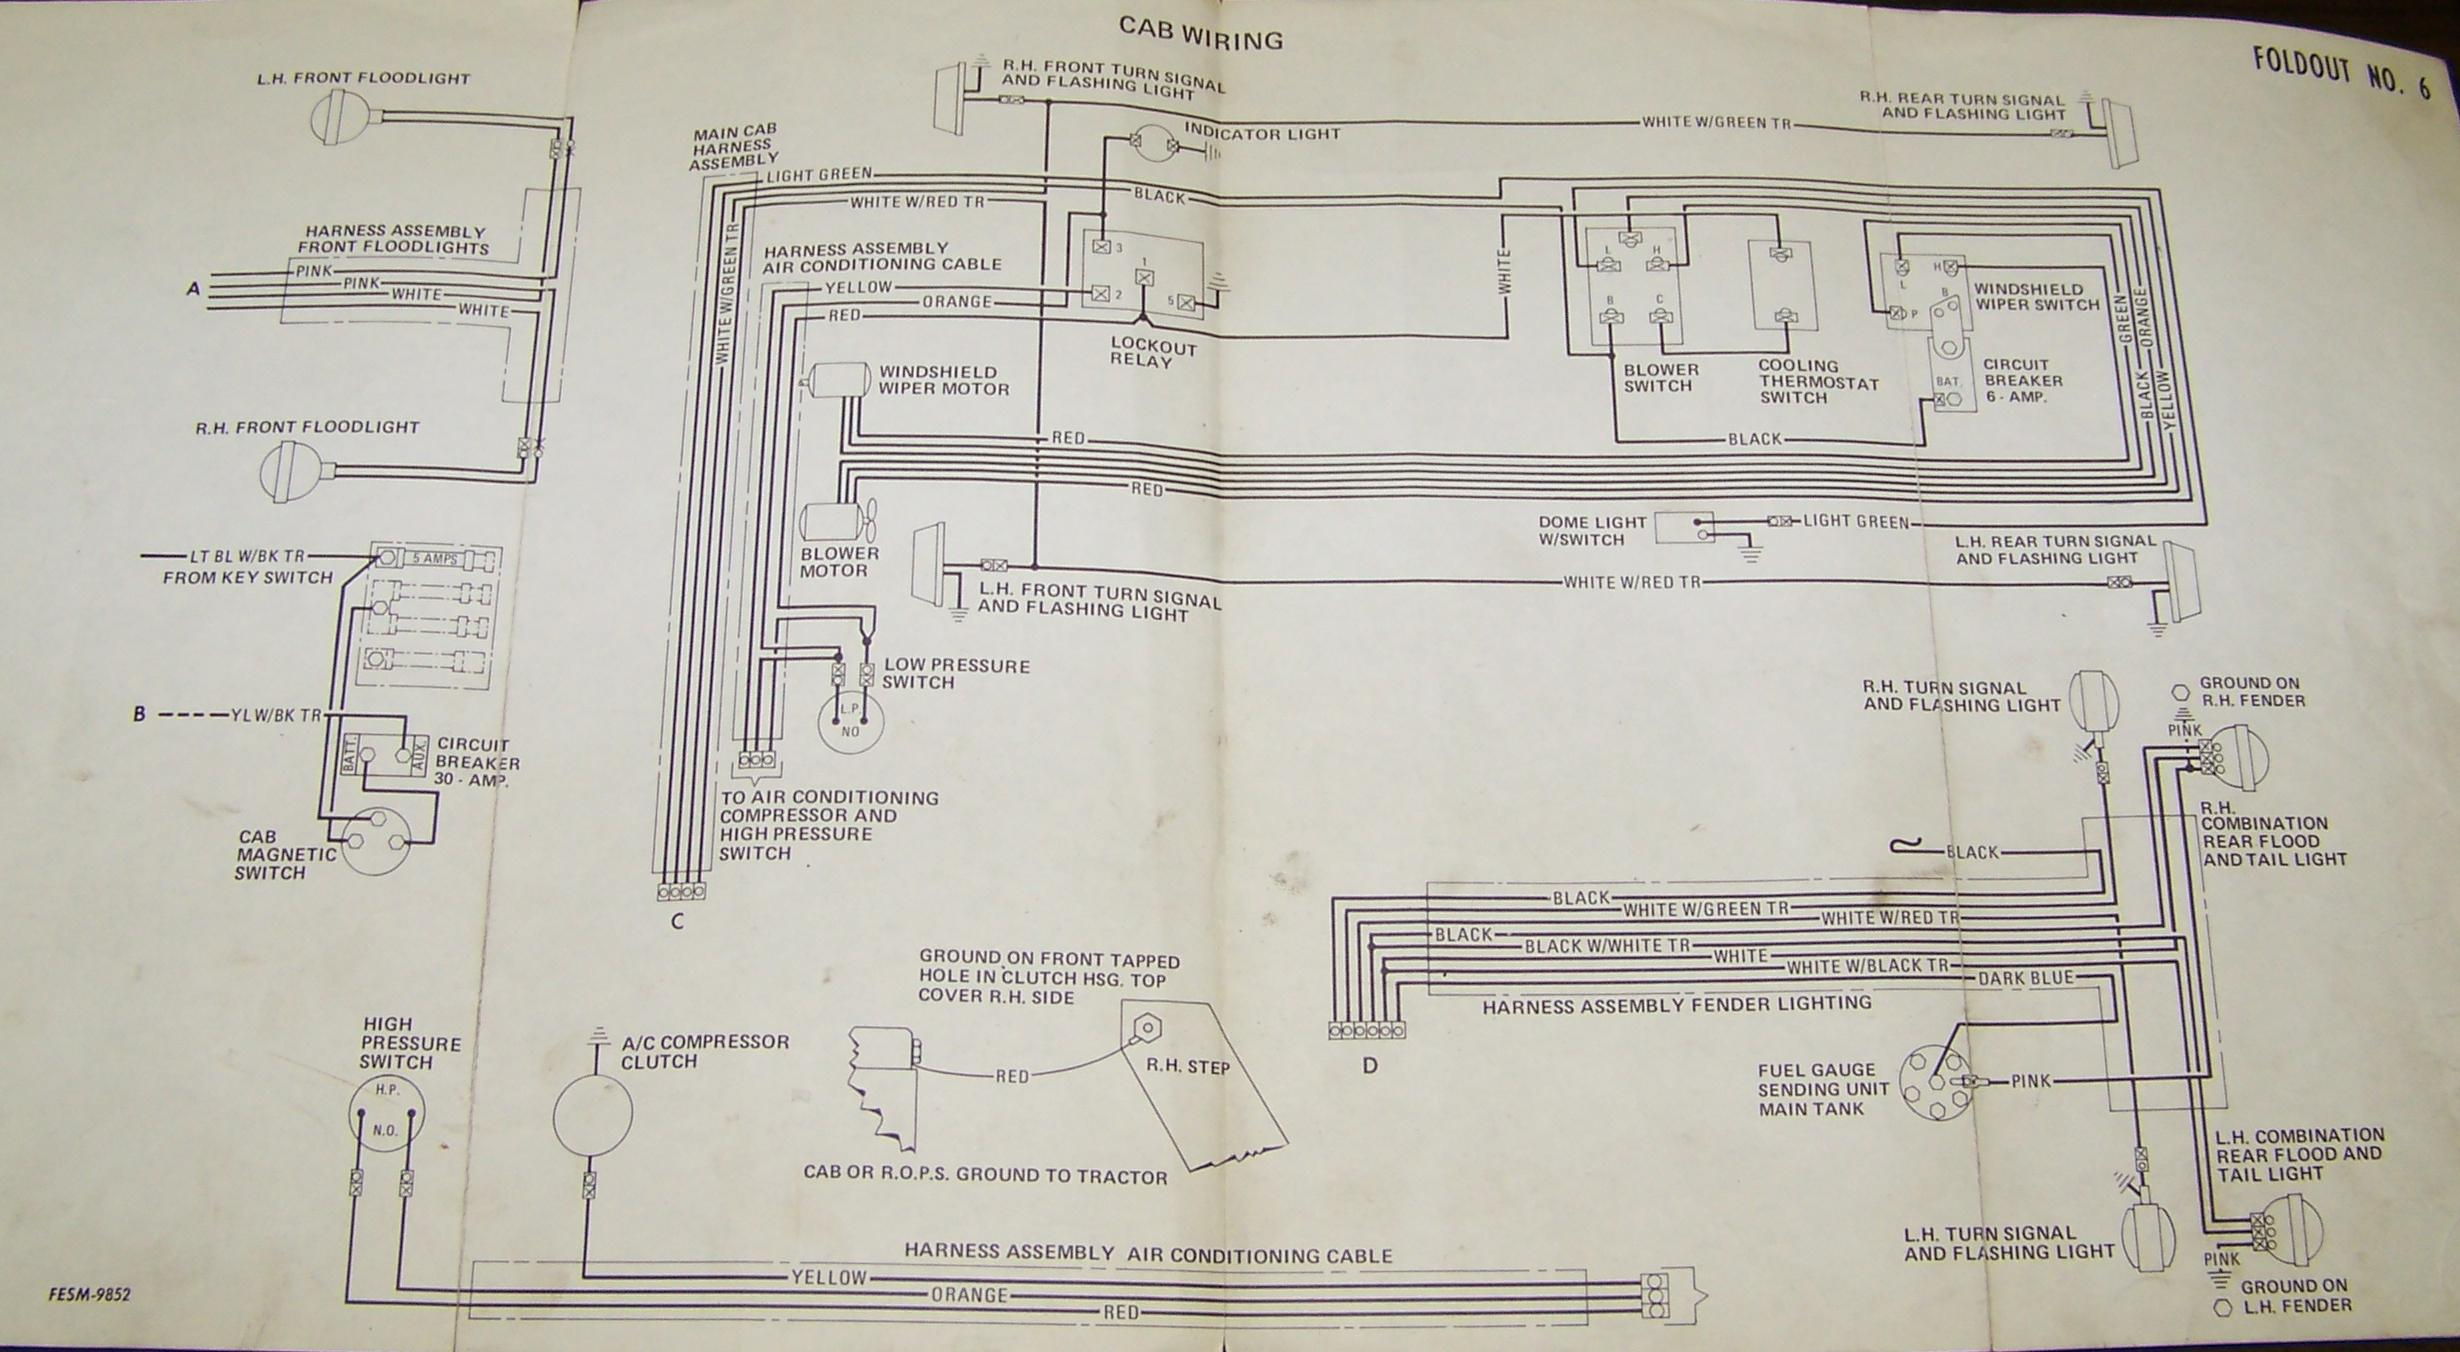 carter gruenewald co inc ih farmall tractor electrical wiring rh cngco com ih 656 wiring diagram 1942 Farmall H Wiring Diagram